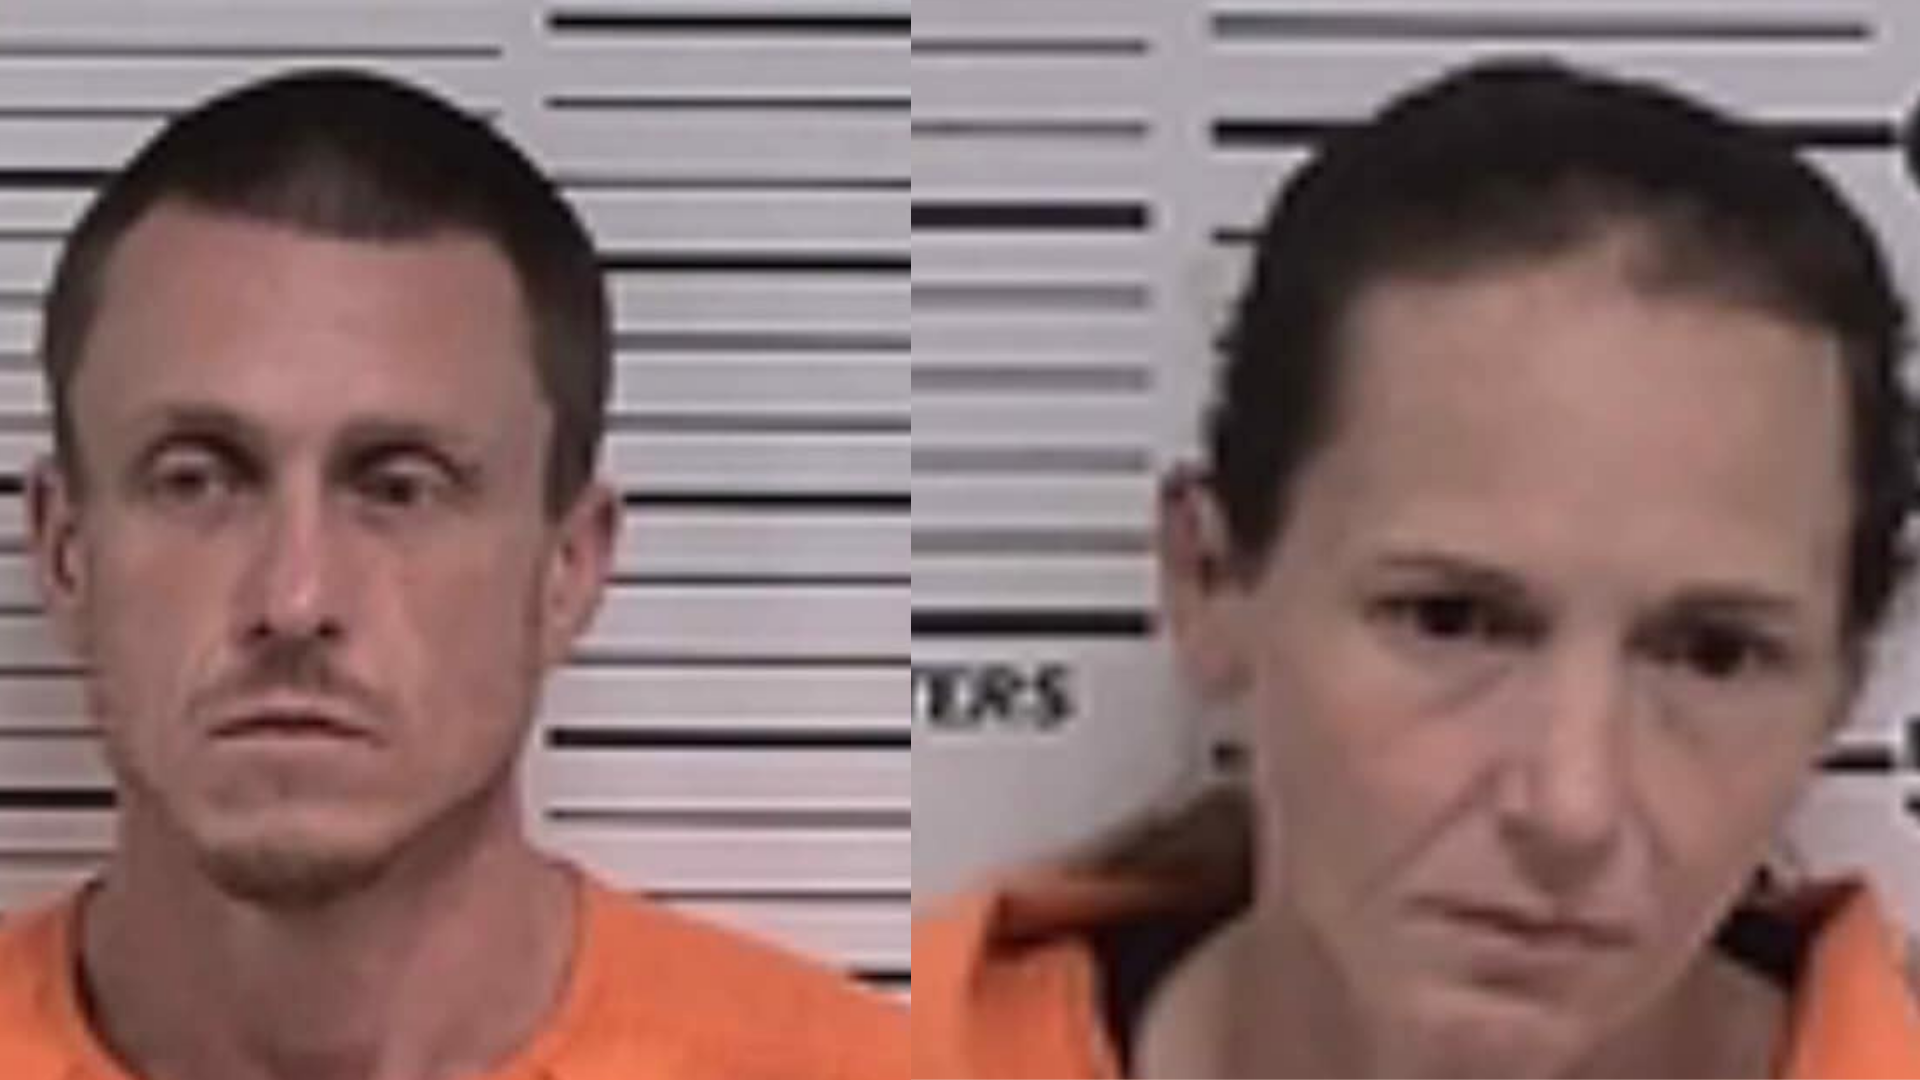 Pair charged with burglarizing Mississippi business, officials say